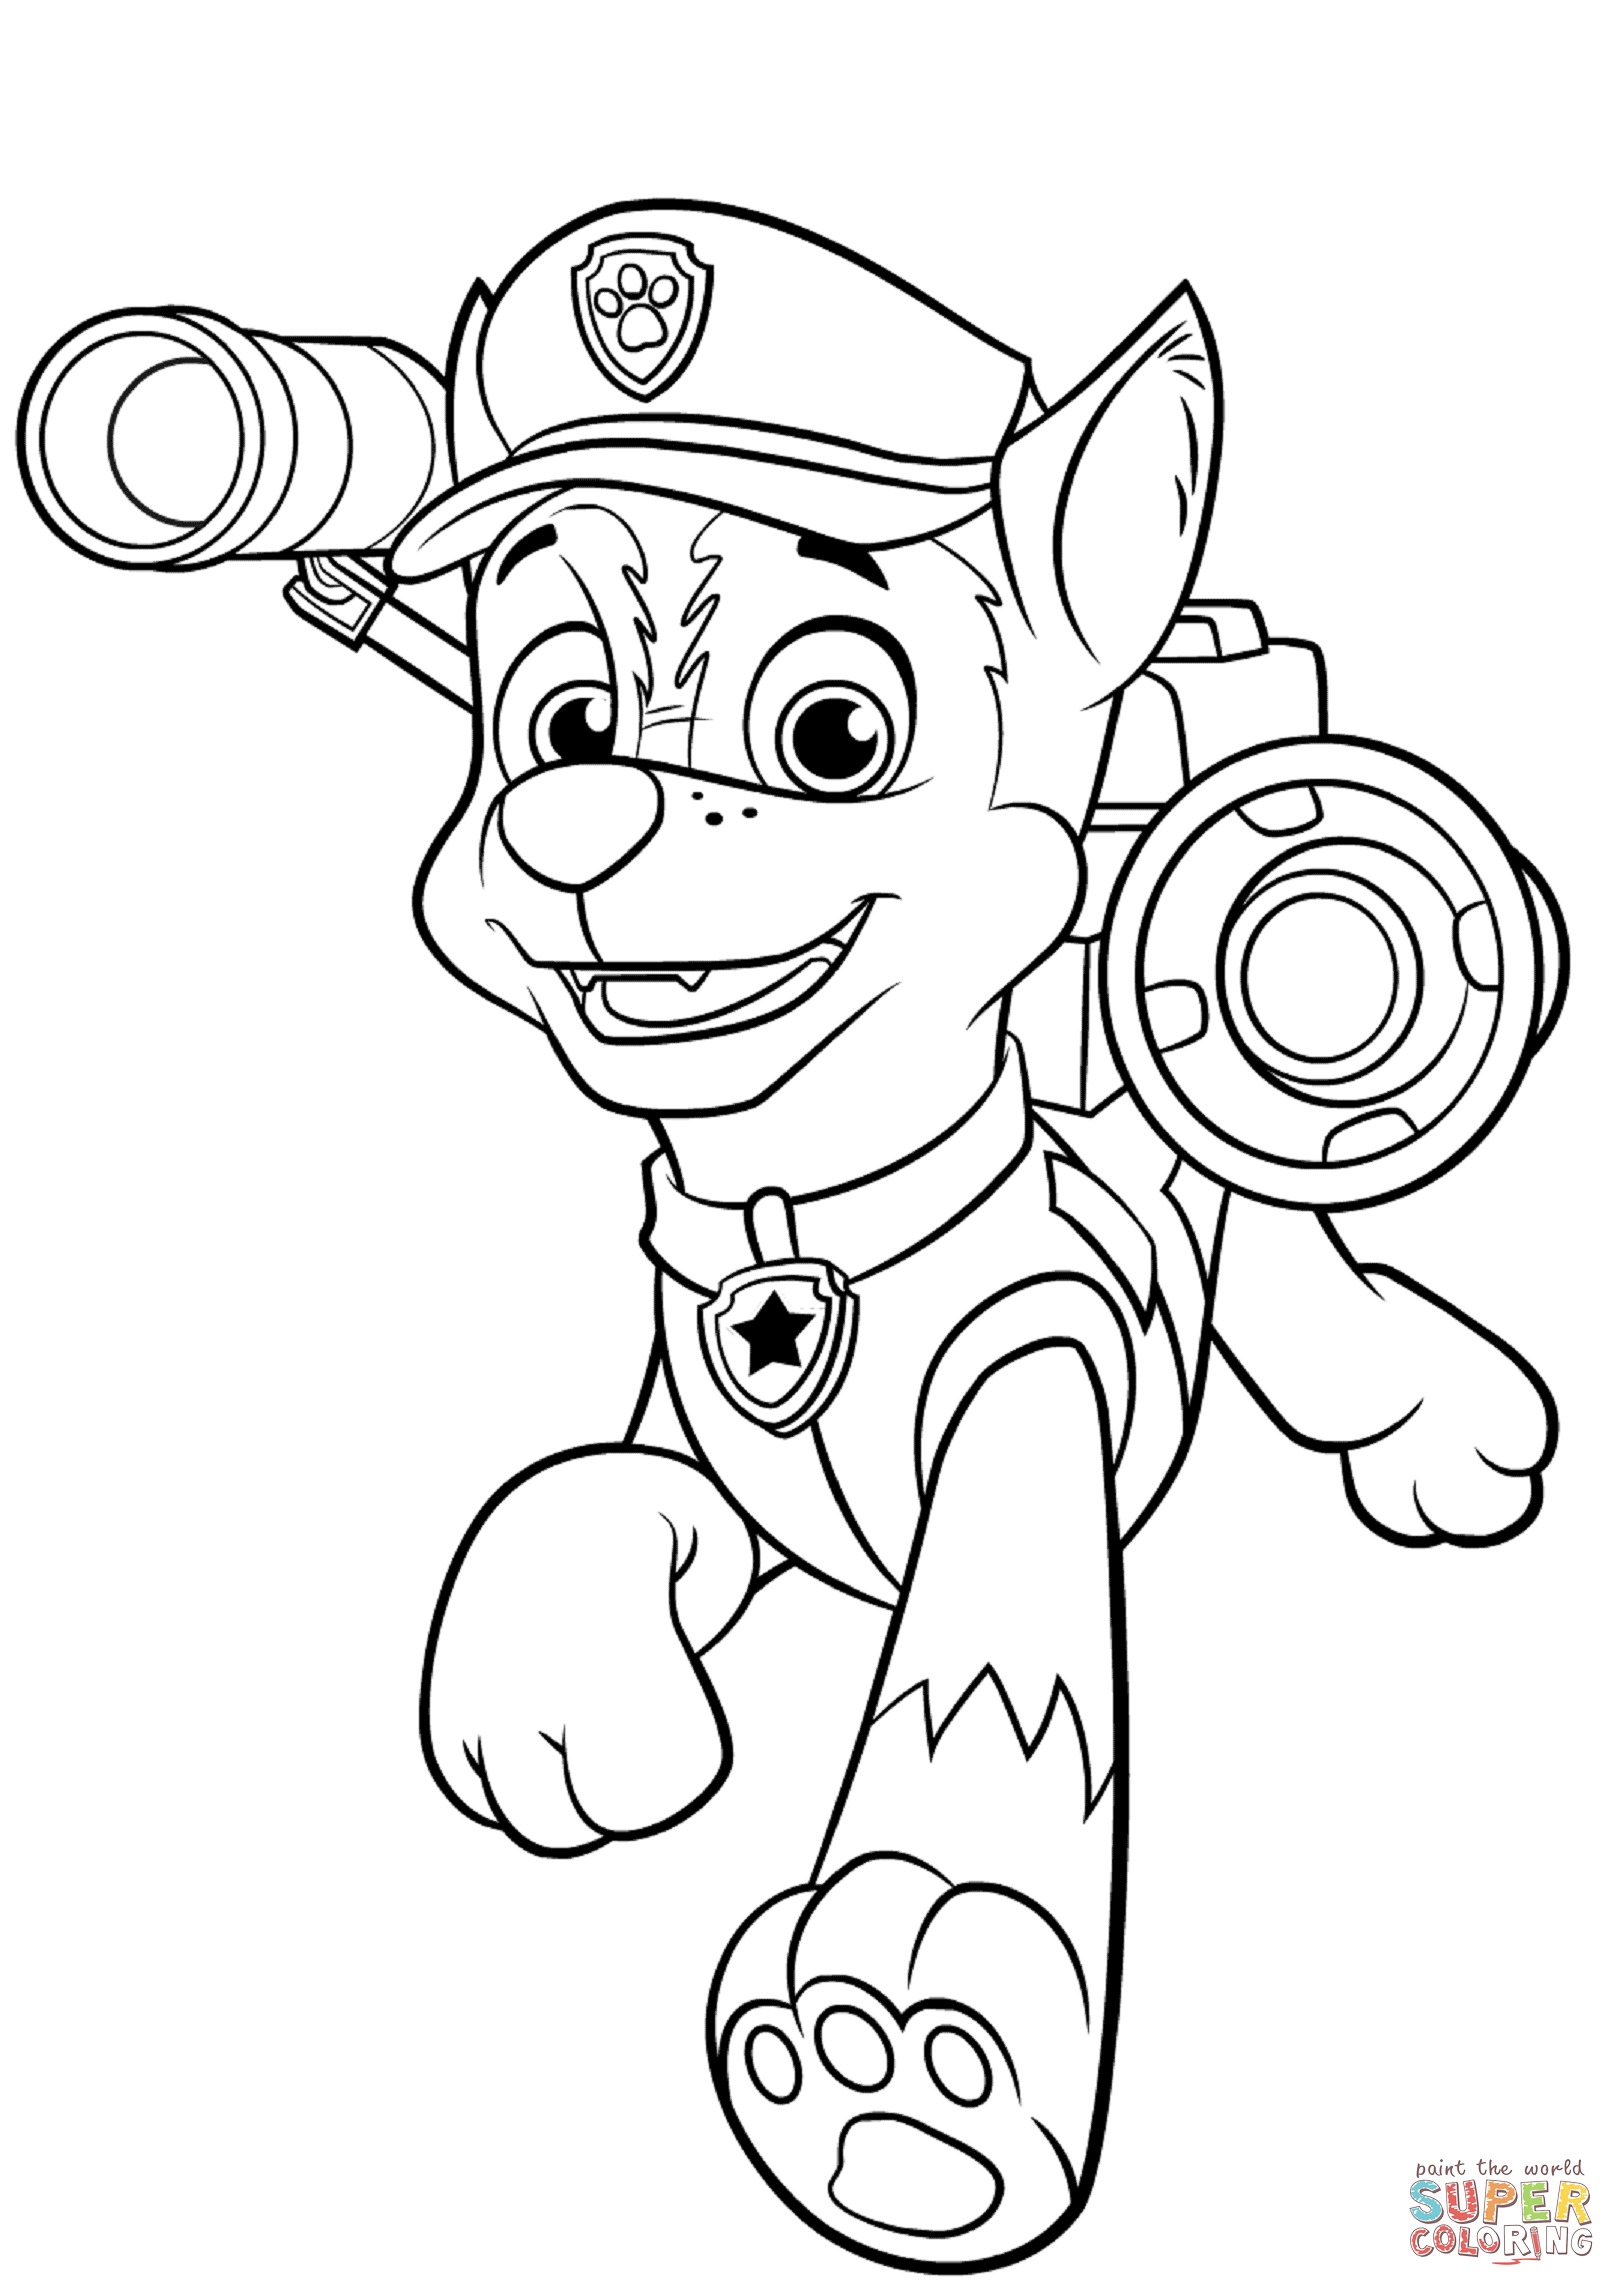 Chase coloring #9, Download drawings